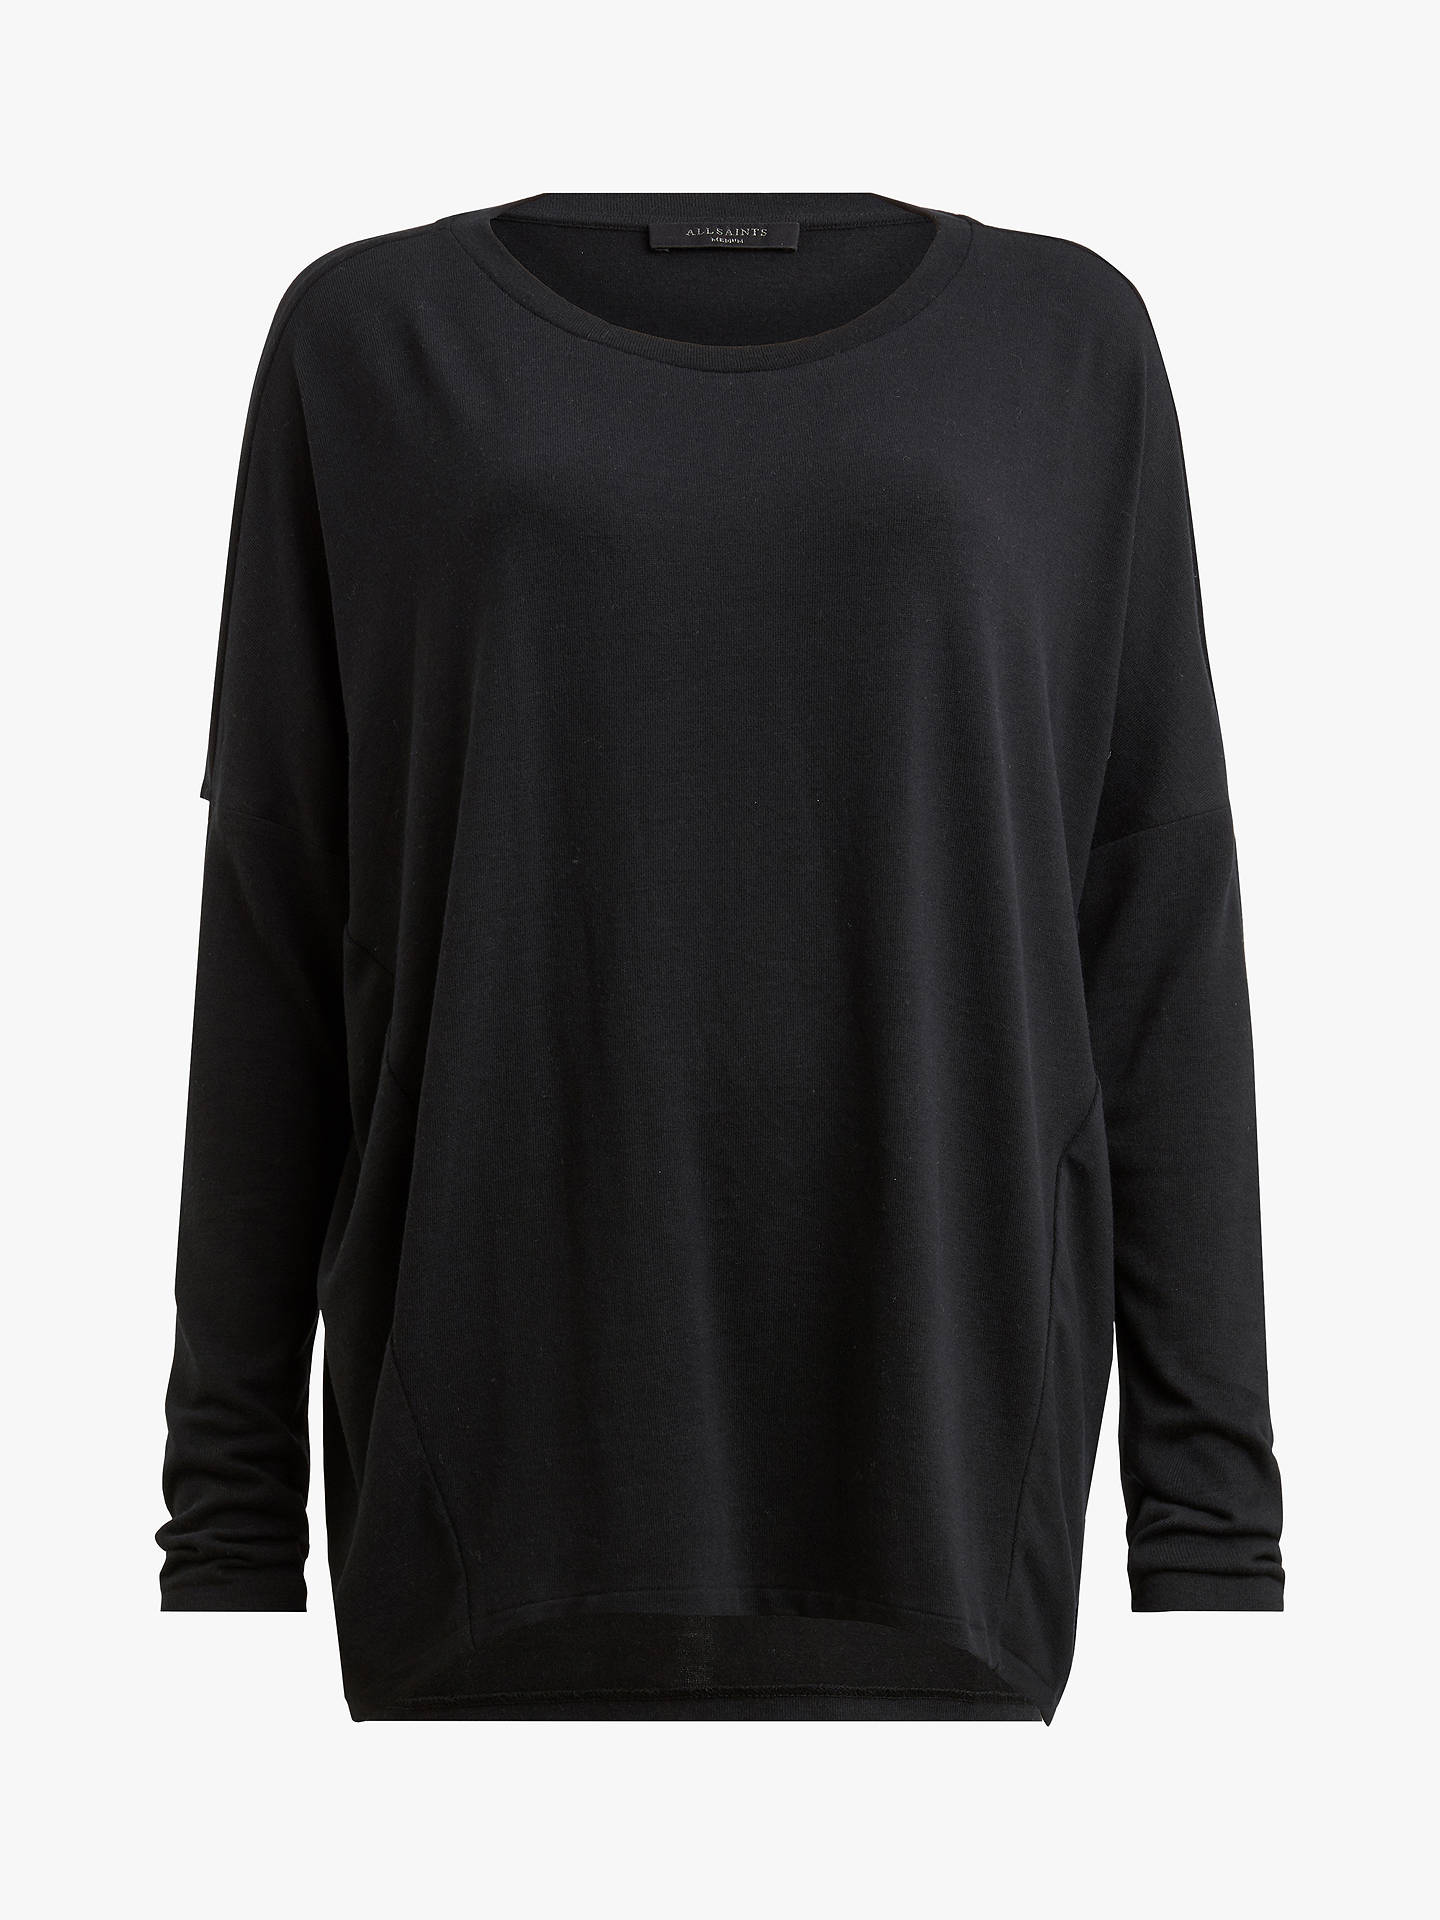 BuyAllSaints Wave Long Sleeve T-Shirt, Black, S Online at johnlewis.com